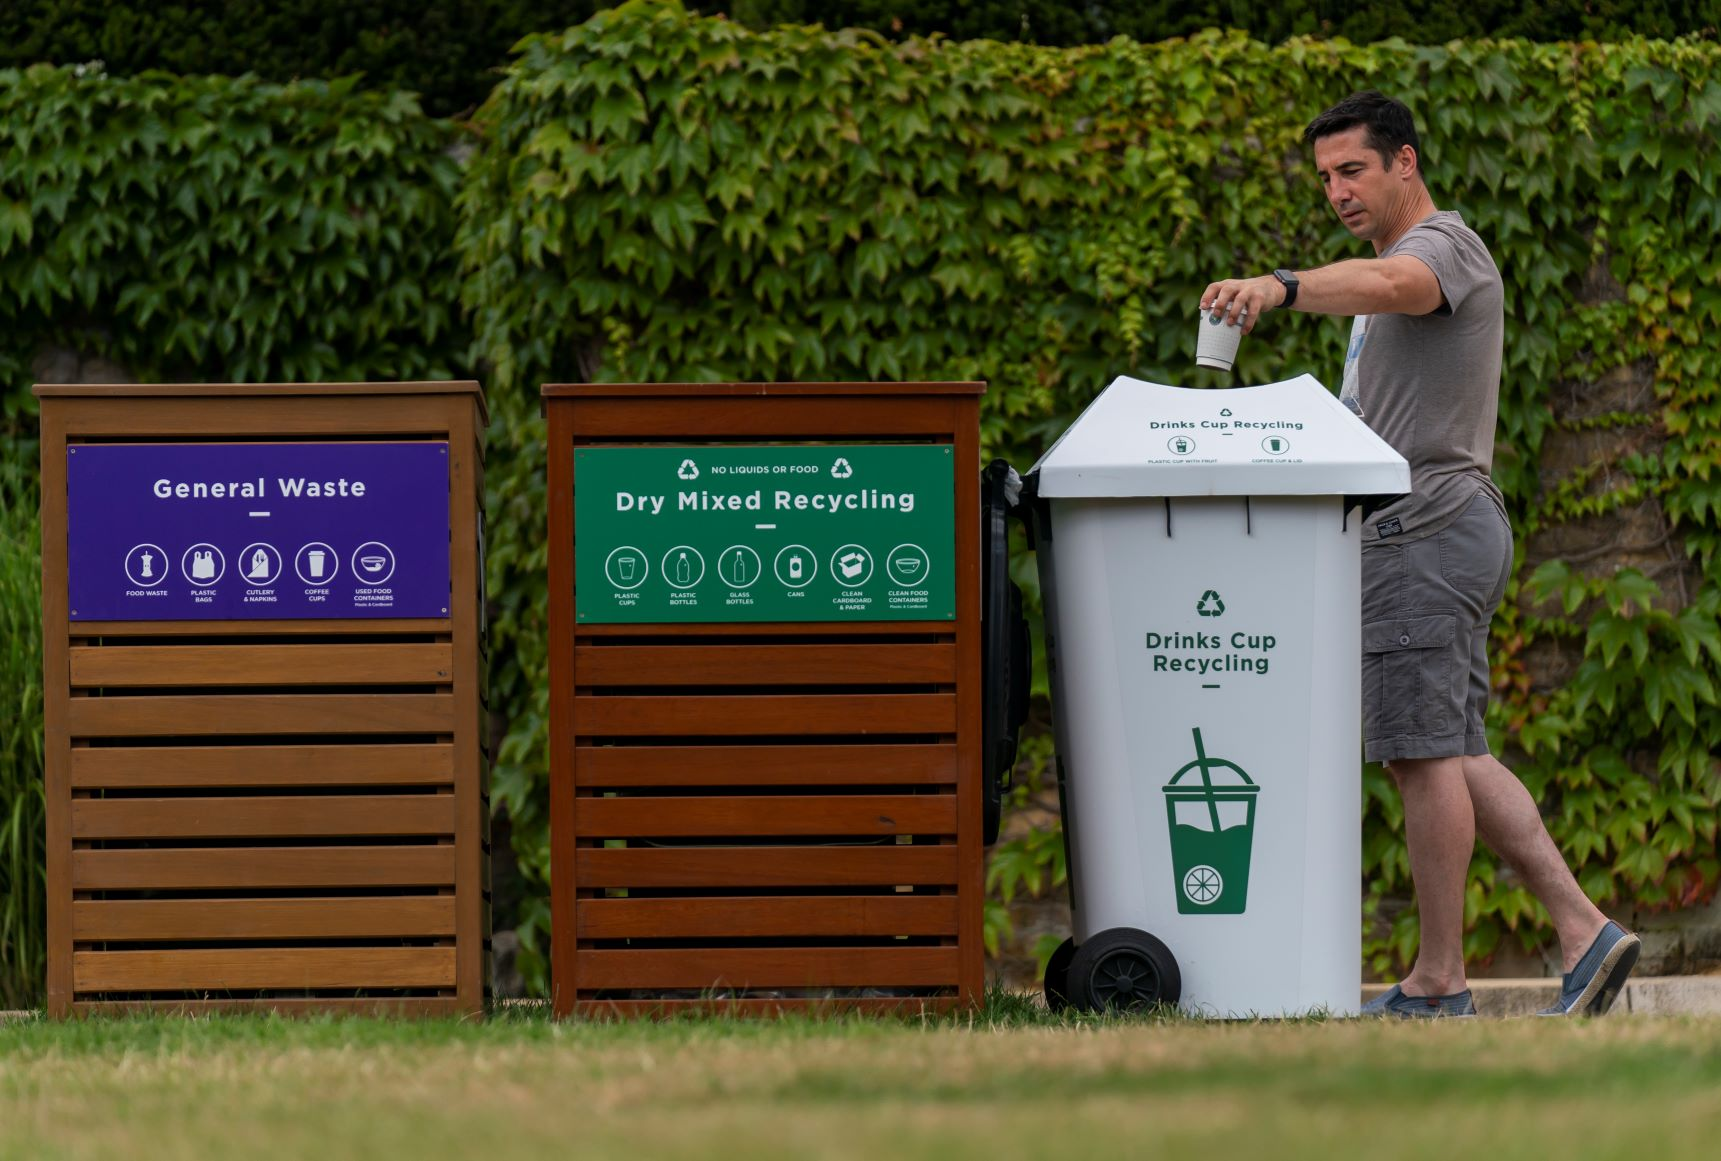 Amongst many improvements at The Championships 2019, clearly-marked bins have helped to avoid contamination